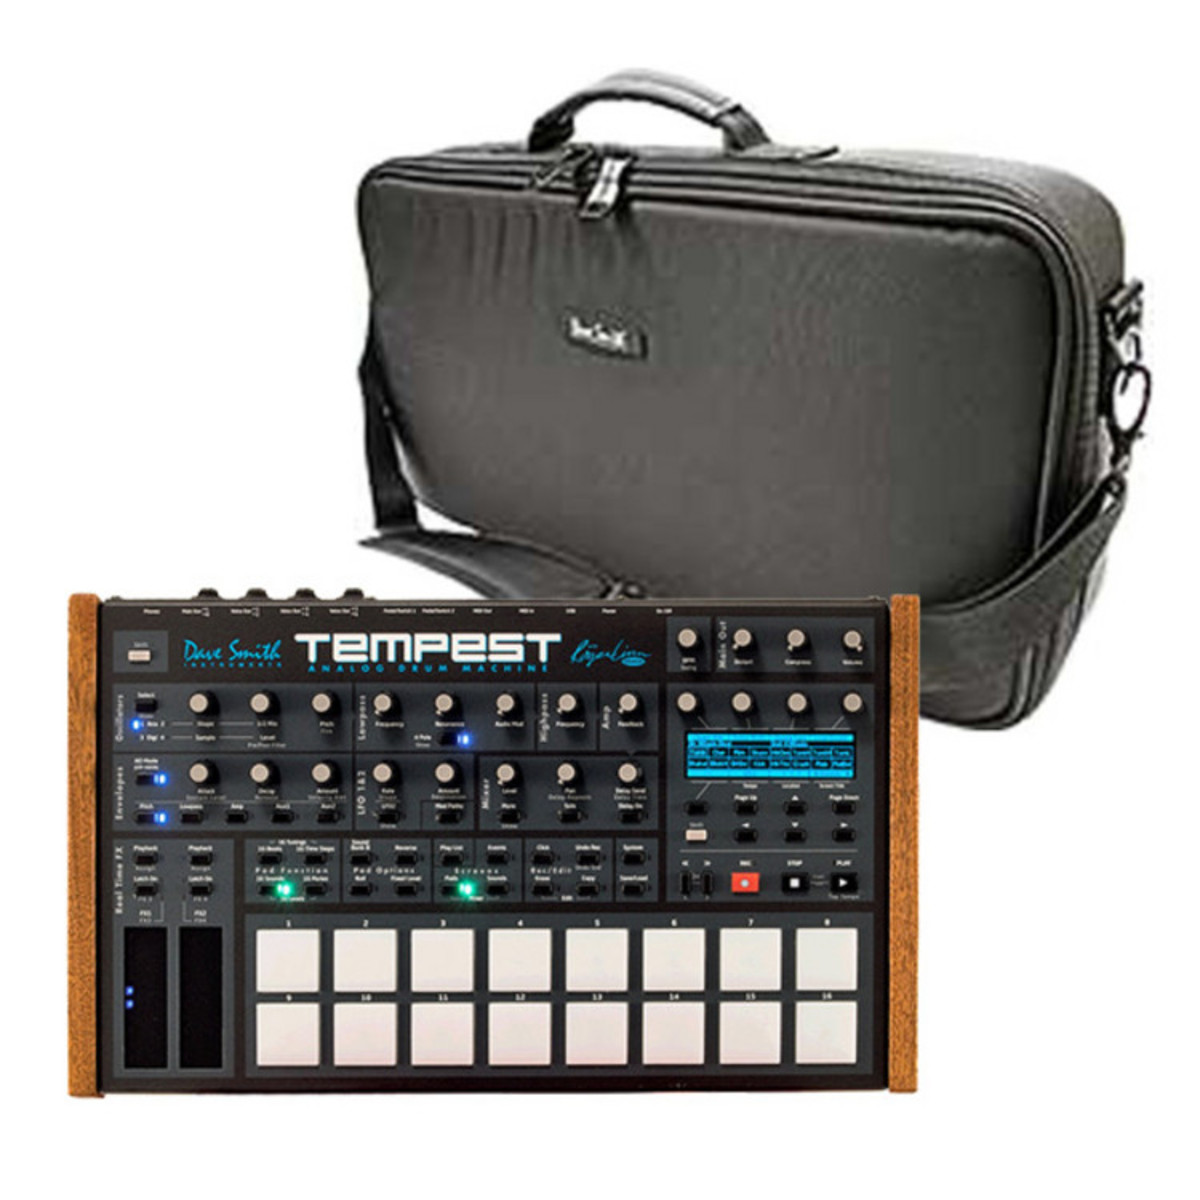 dave smith instruments tempest analog drum machine and bag at. Black Bedroom Furniture Sets. Home Design Ideas